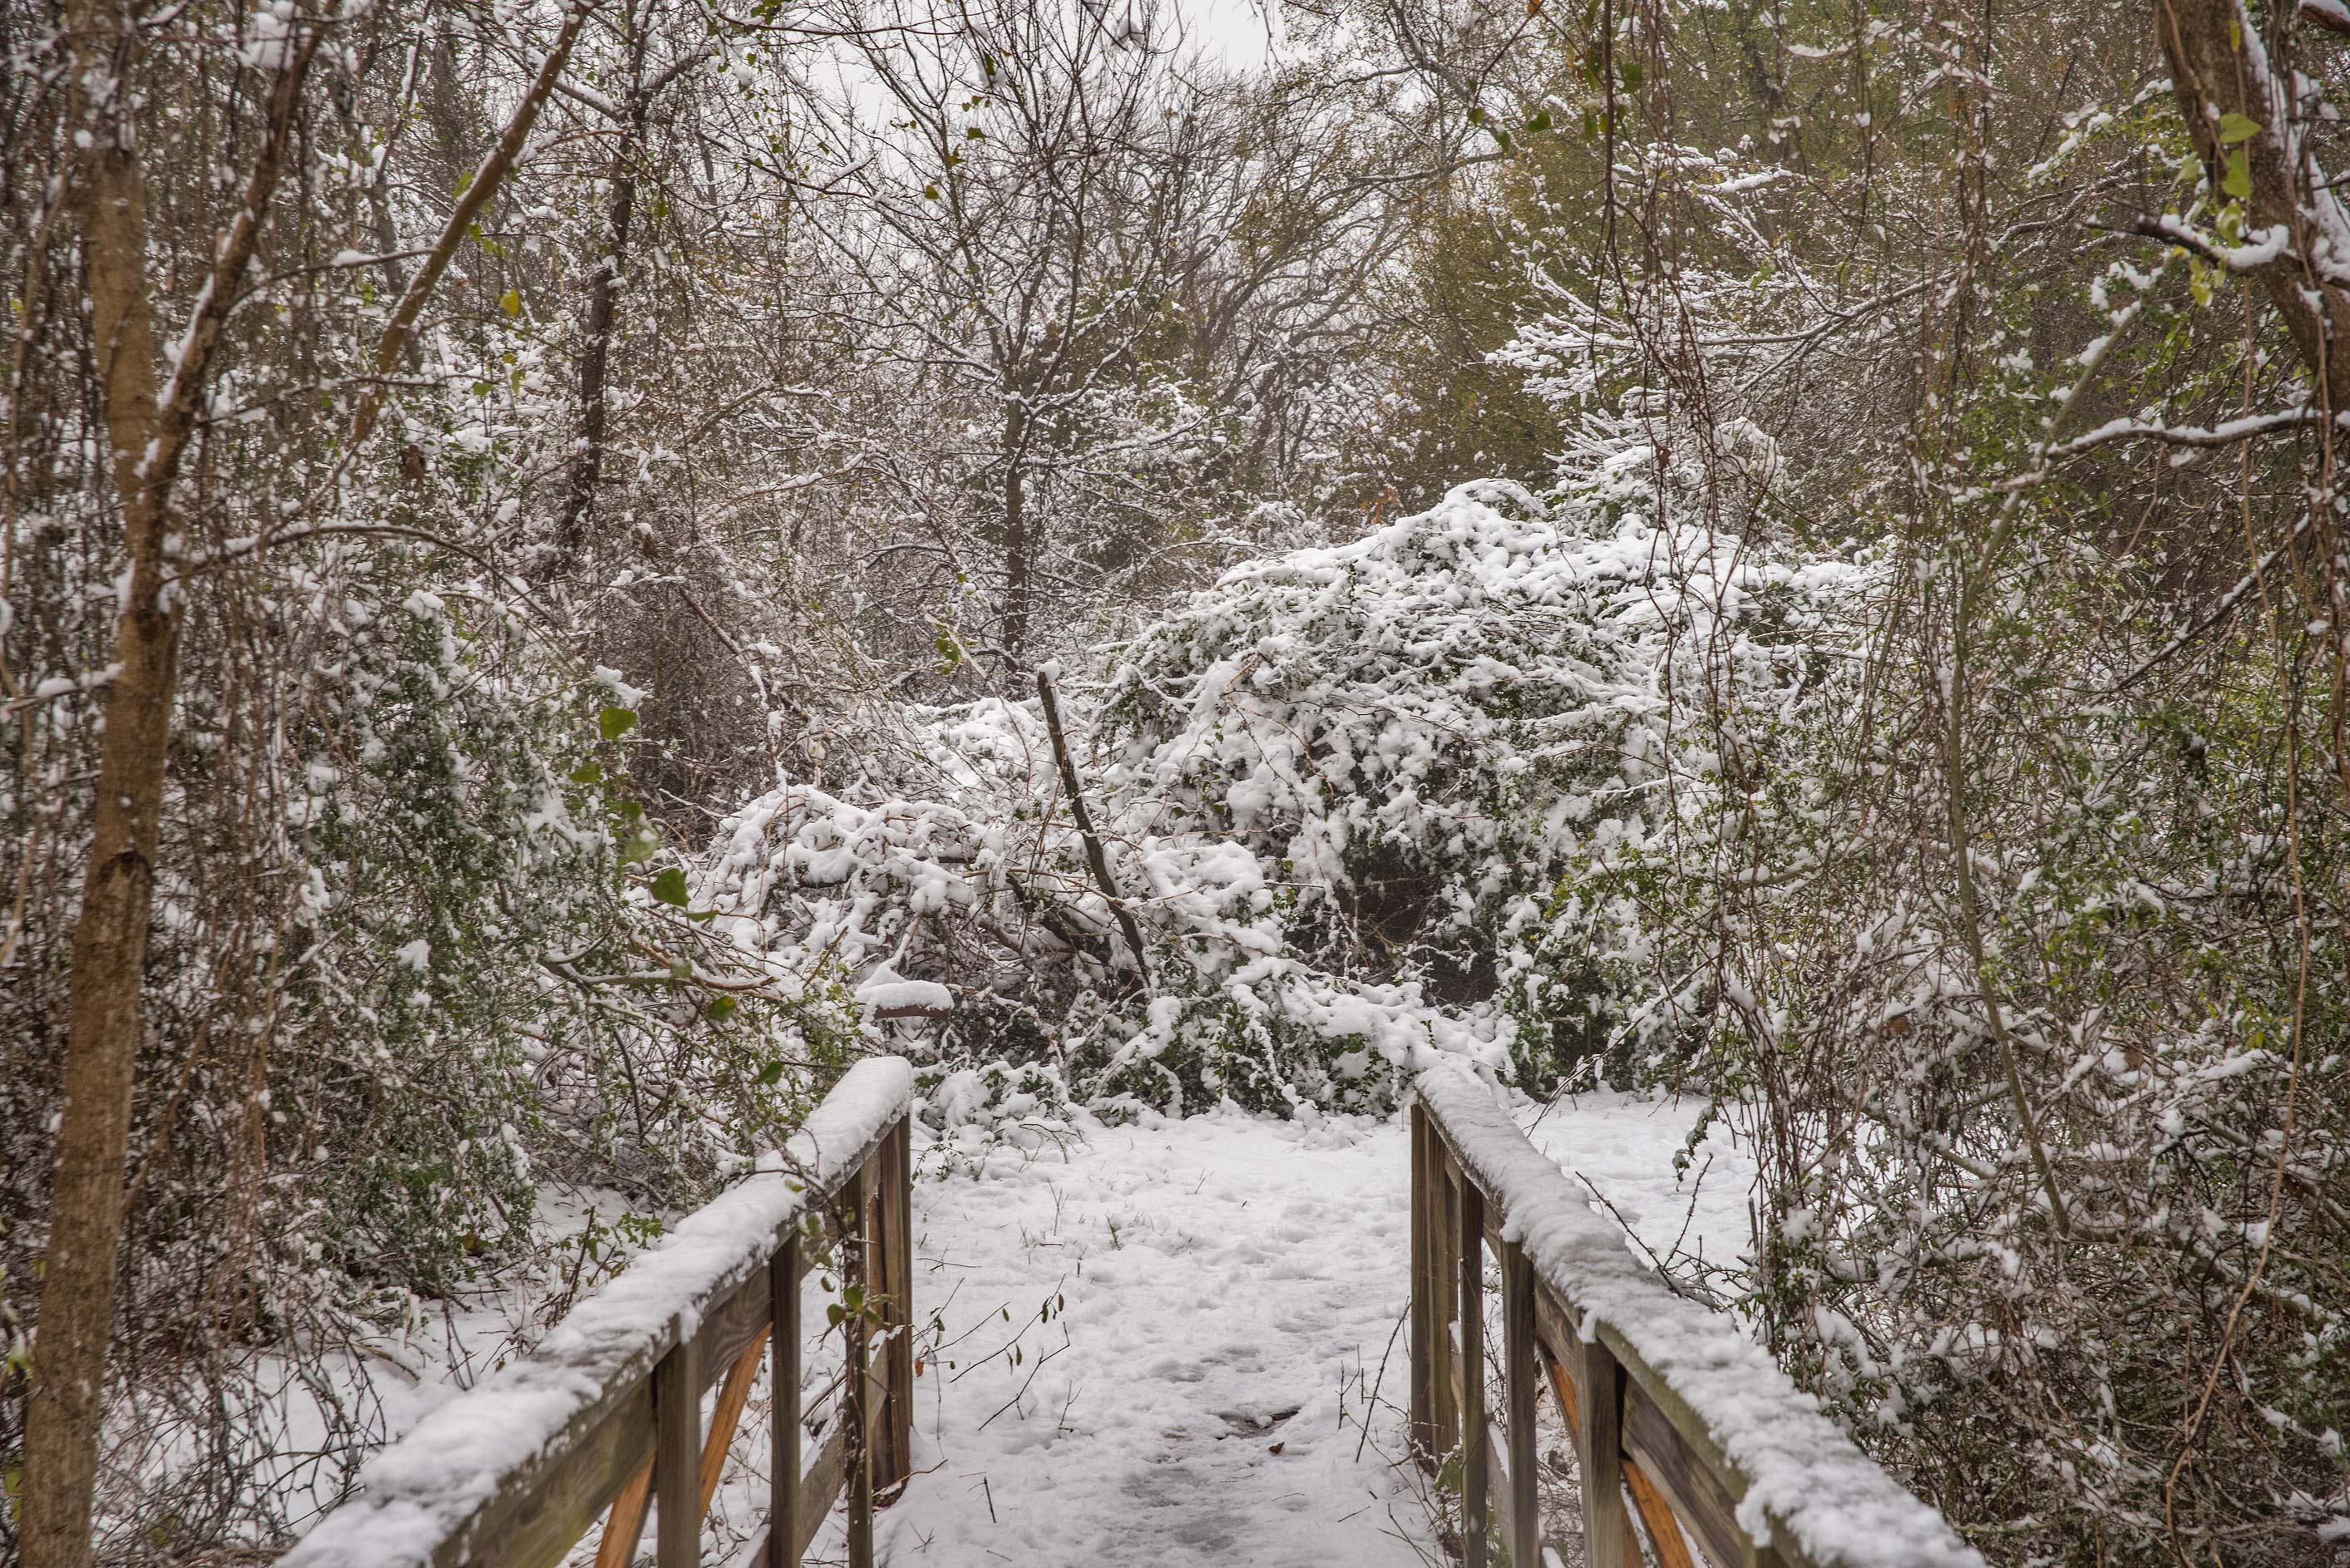 Foot bridge in snow in Bee Creek Park. College Station, Texas